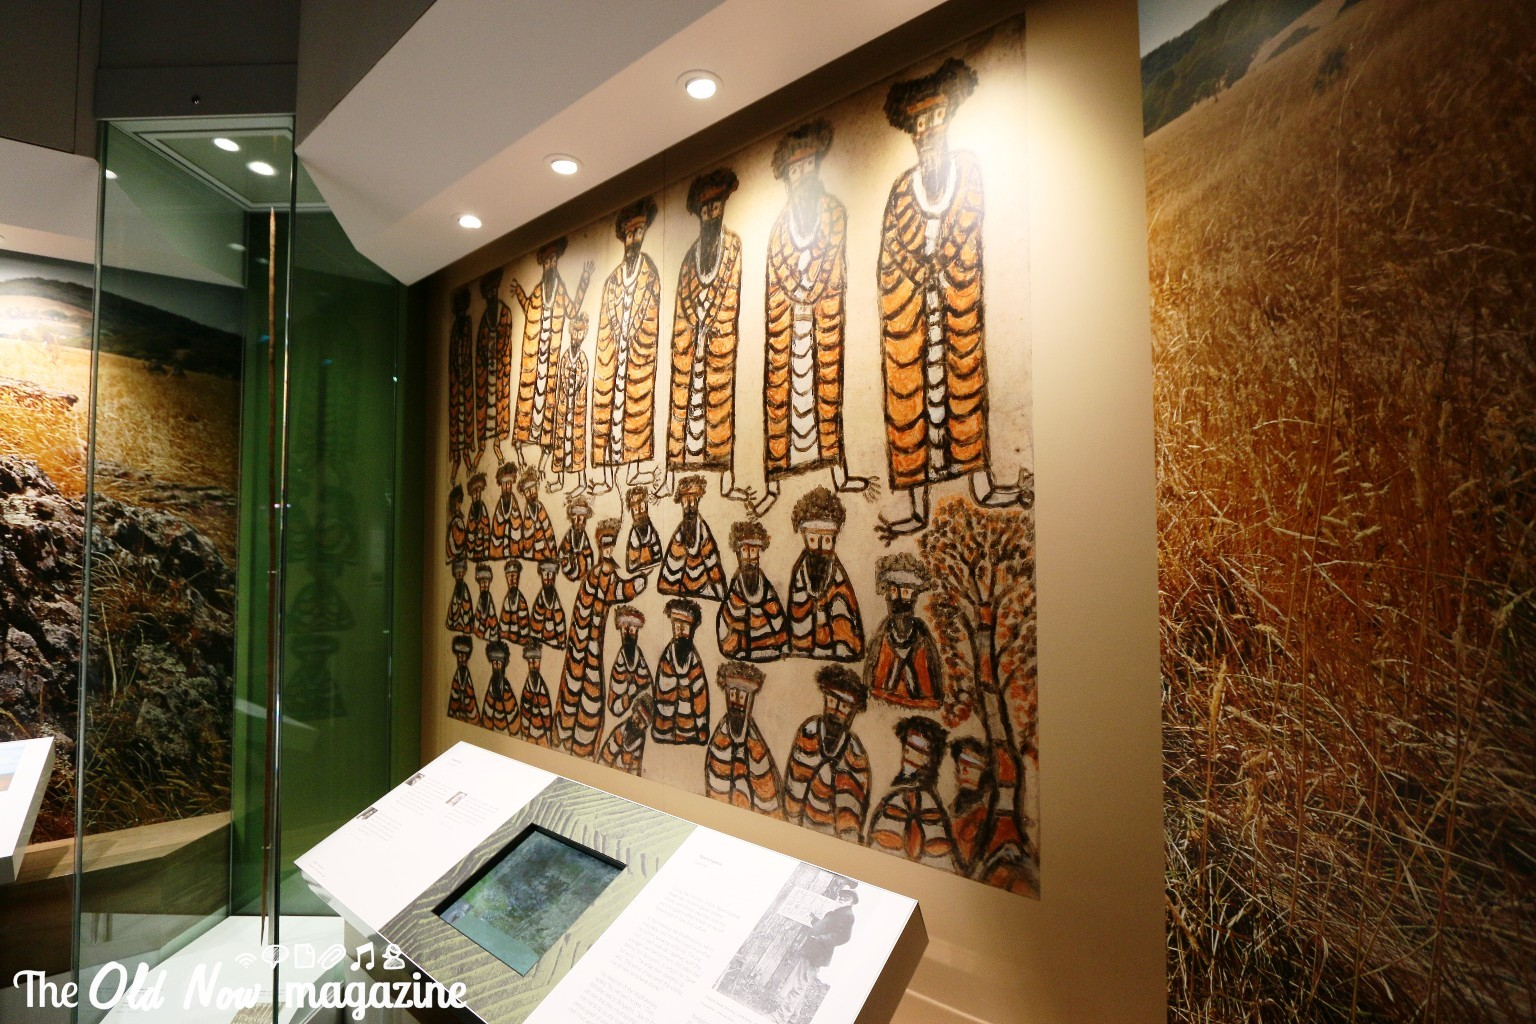 MELBOURNE MUSEUM THEOLDOW (36)